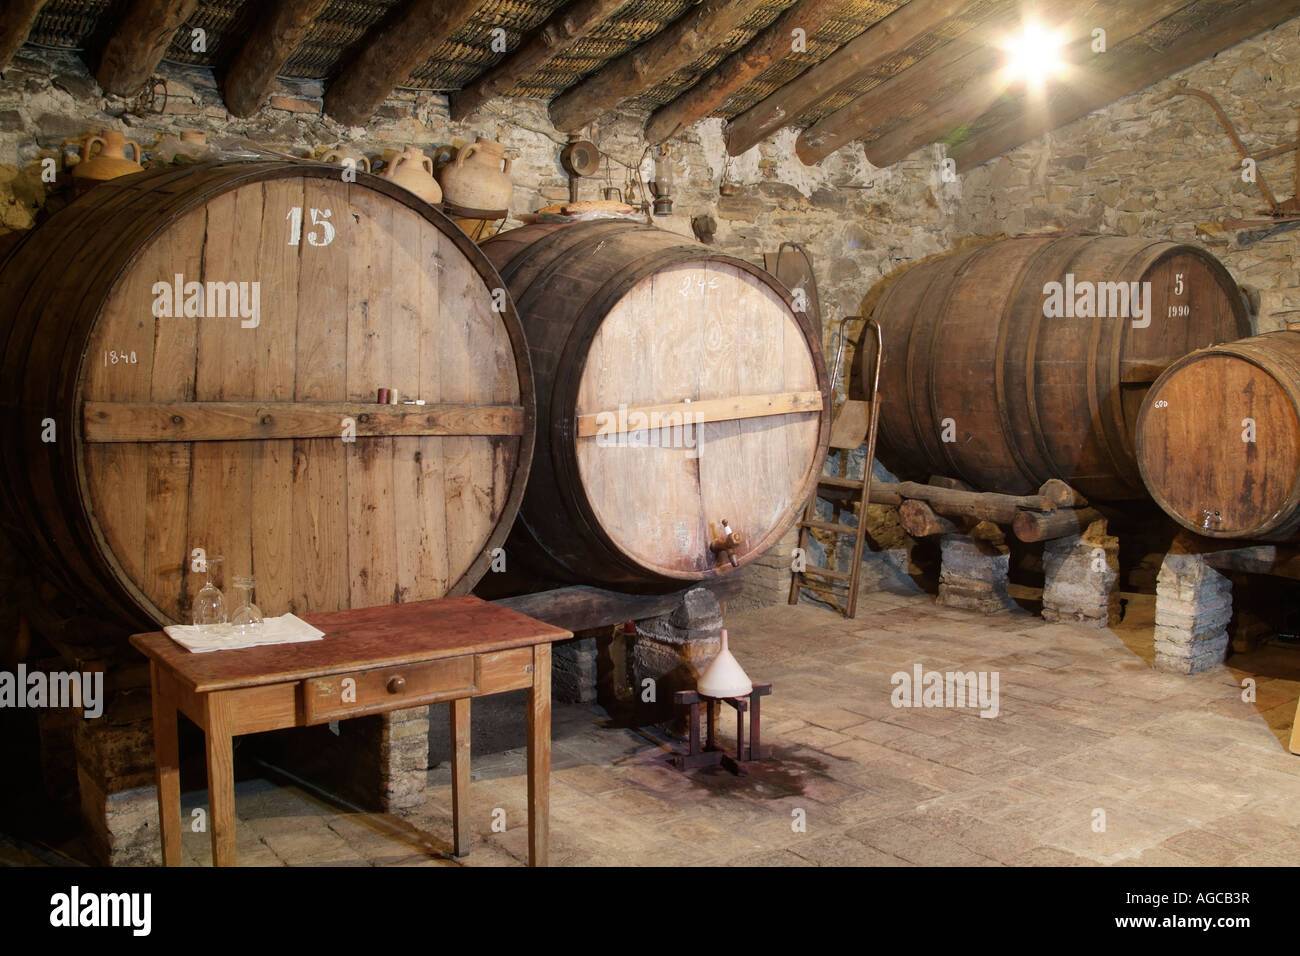 Detail of the setting of the wine cellar Celler Cecilio, Gratallops. - Stock Image